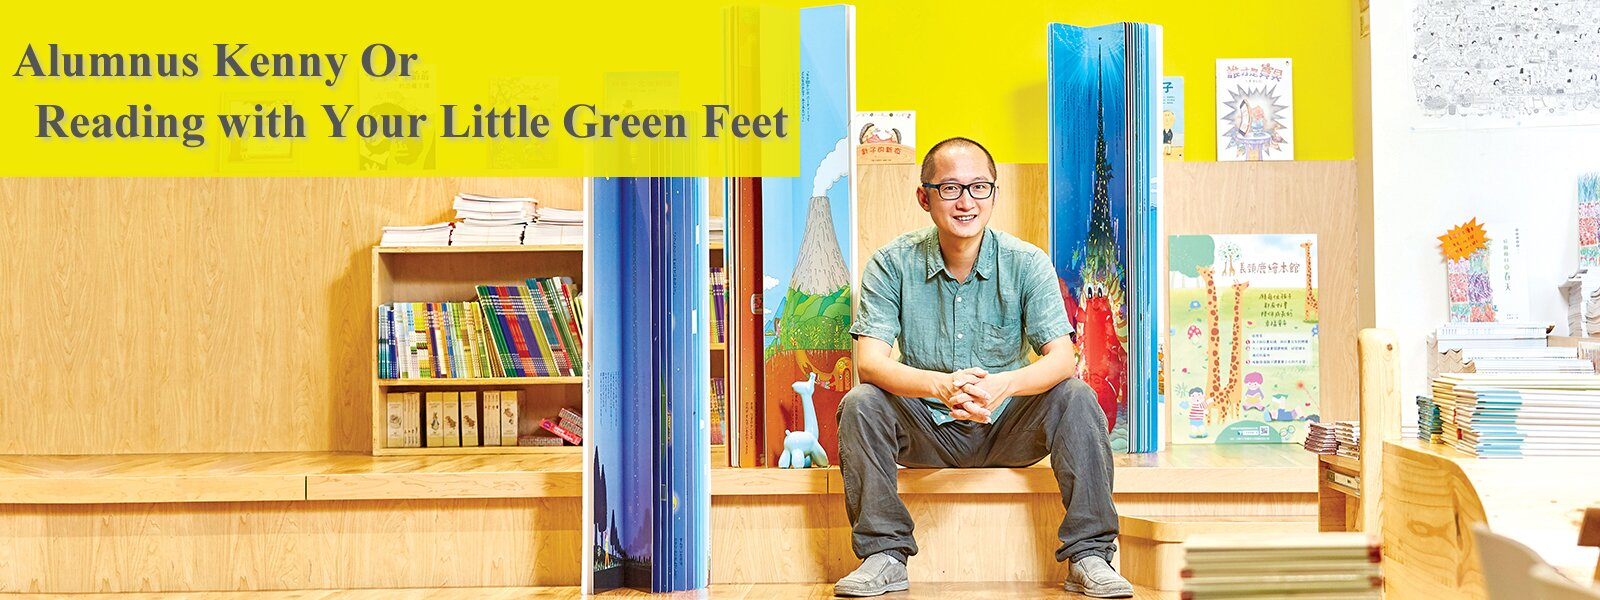 Alumnus Kenny Or: Reading with Your Little Green Feet